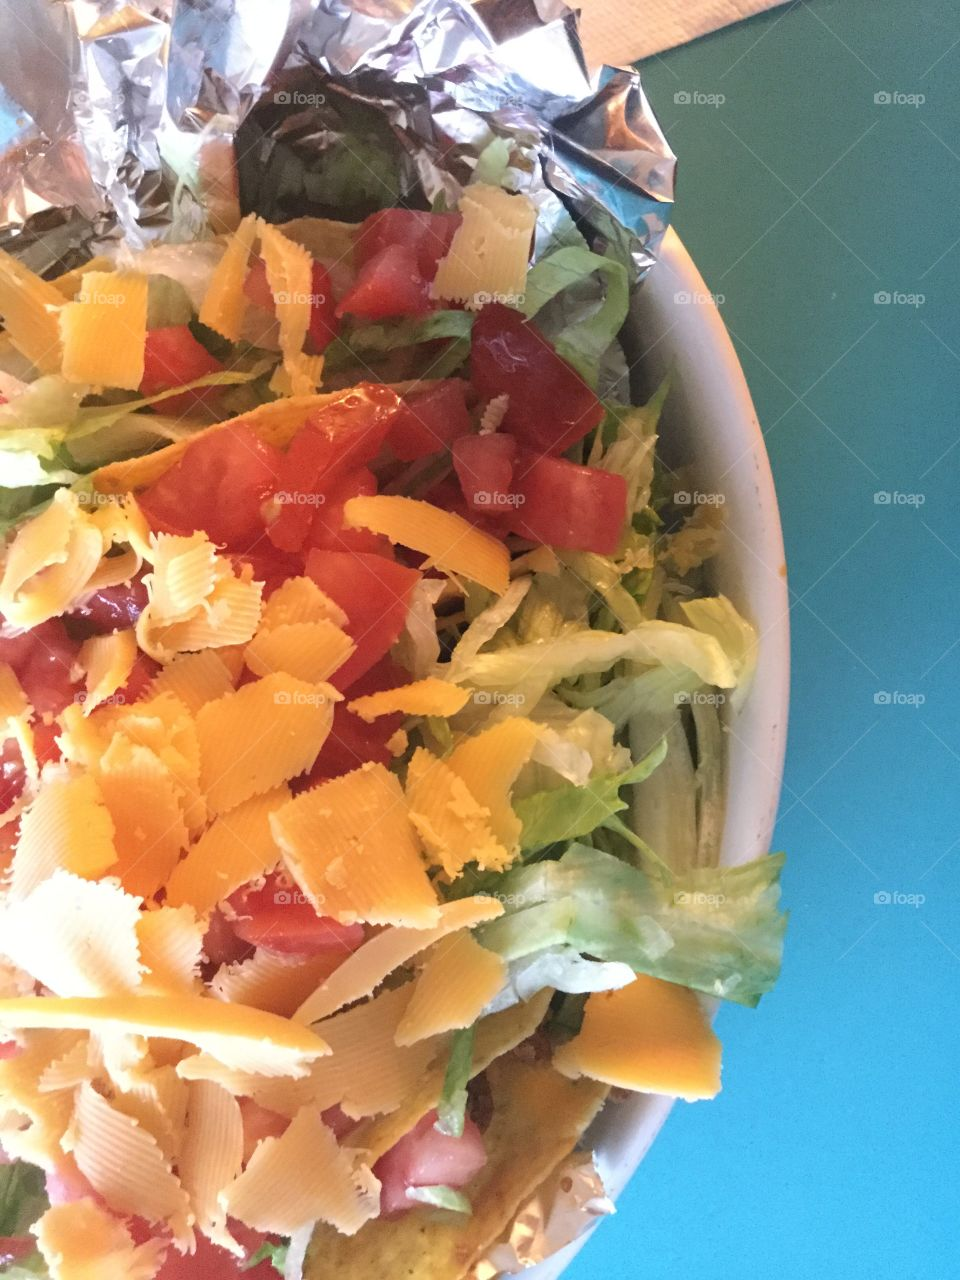 Taco salad with lots of cheese